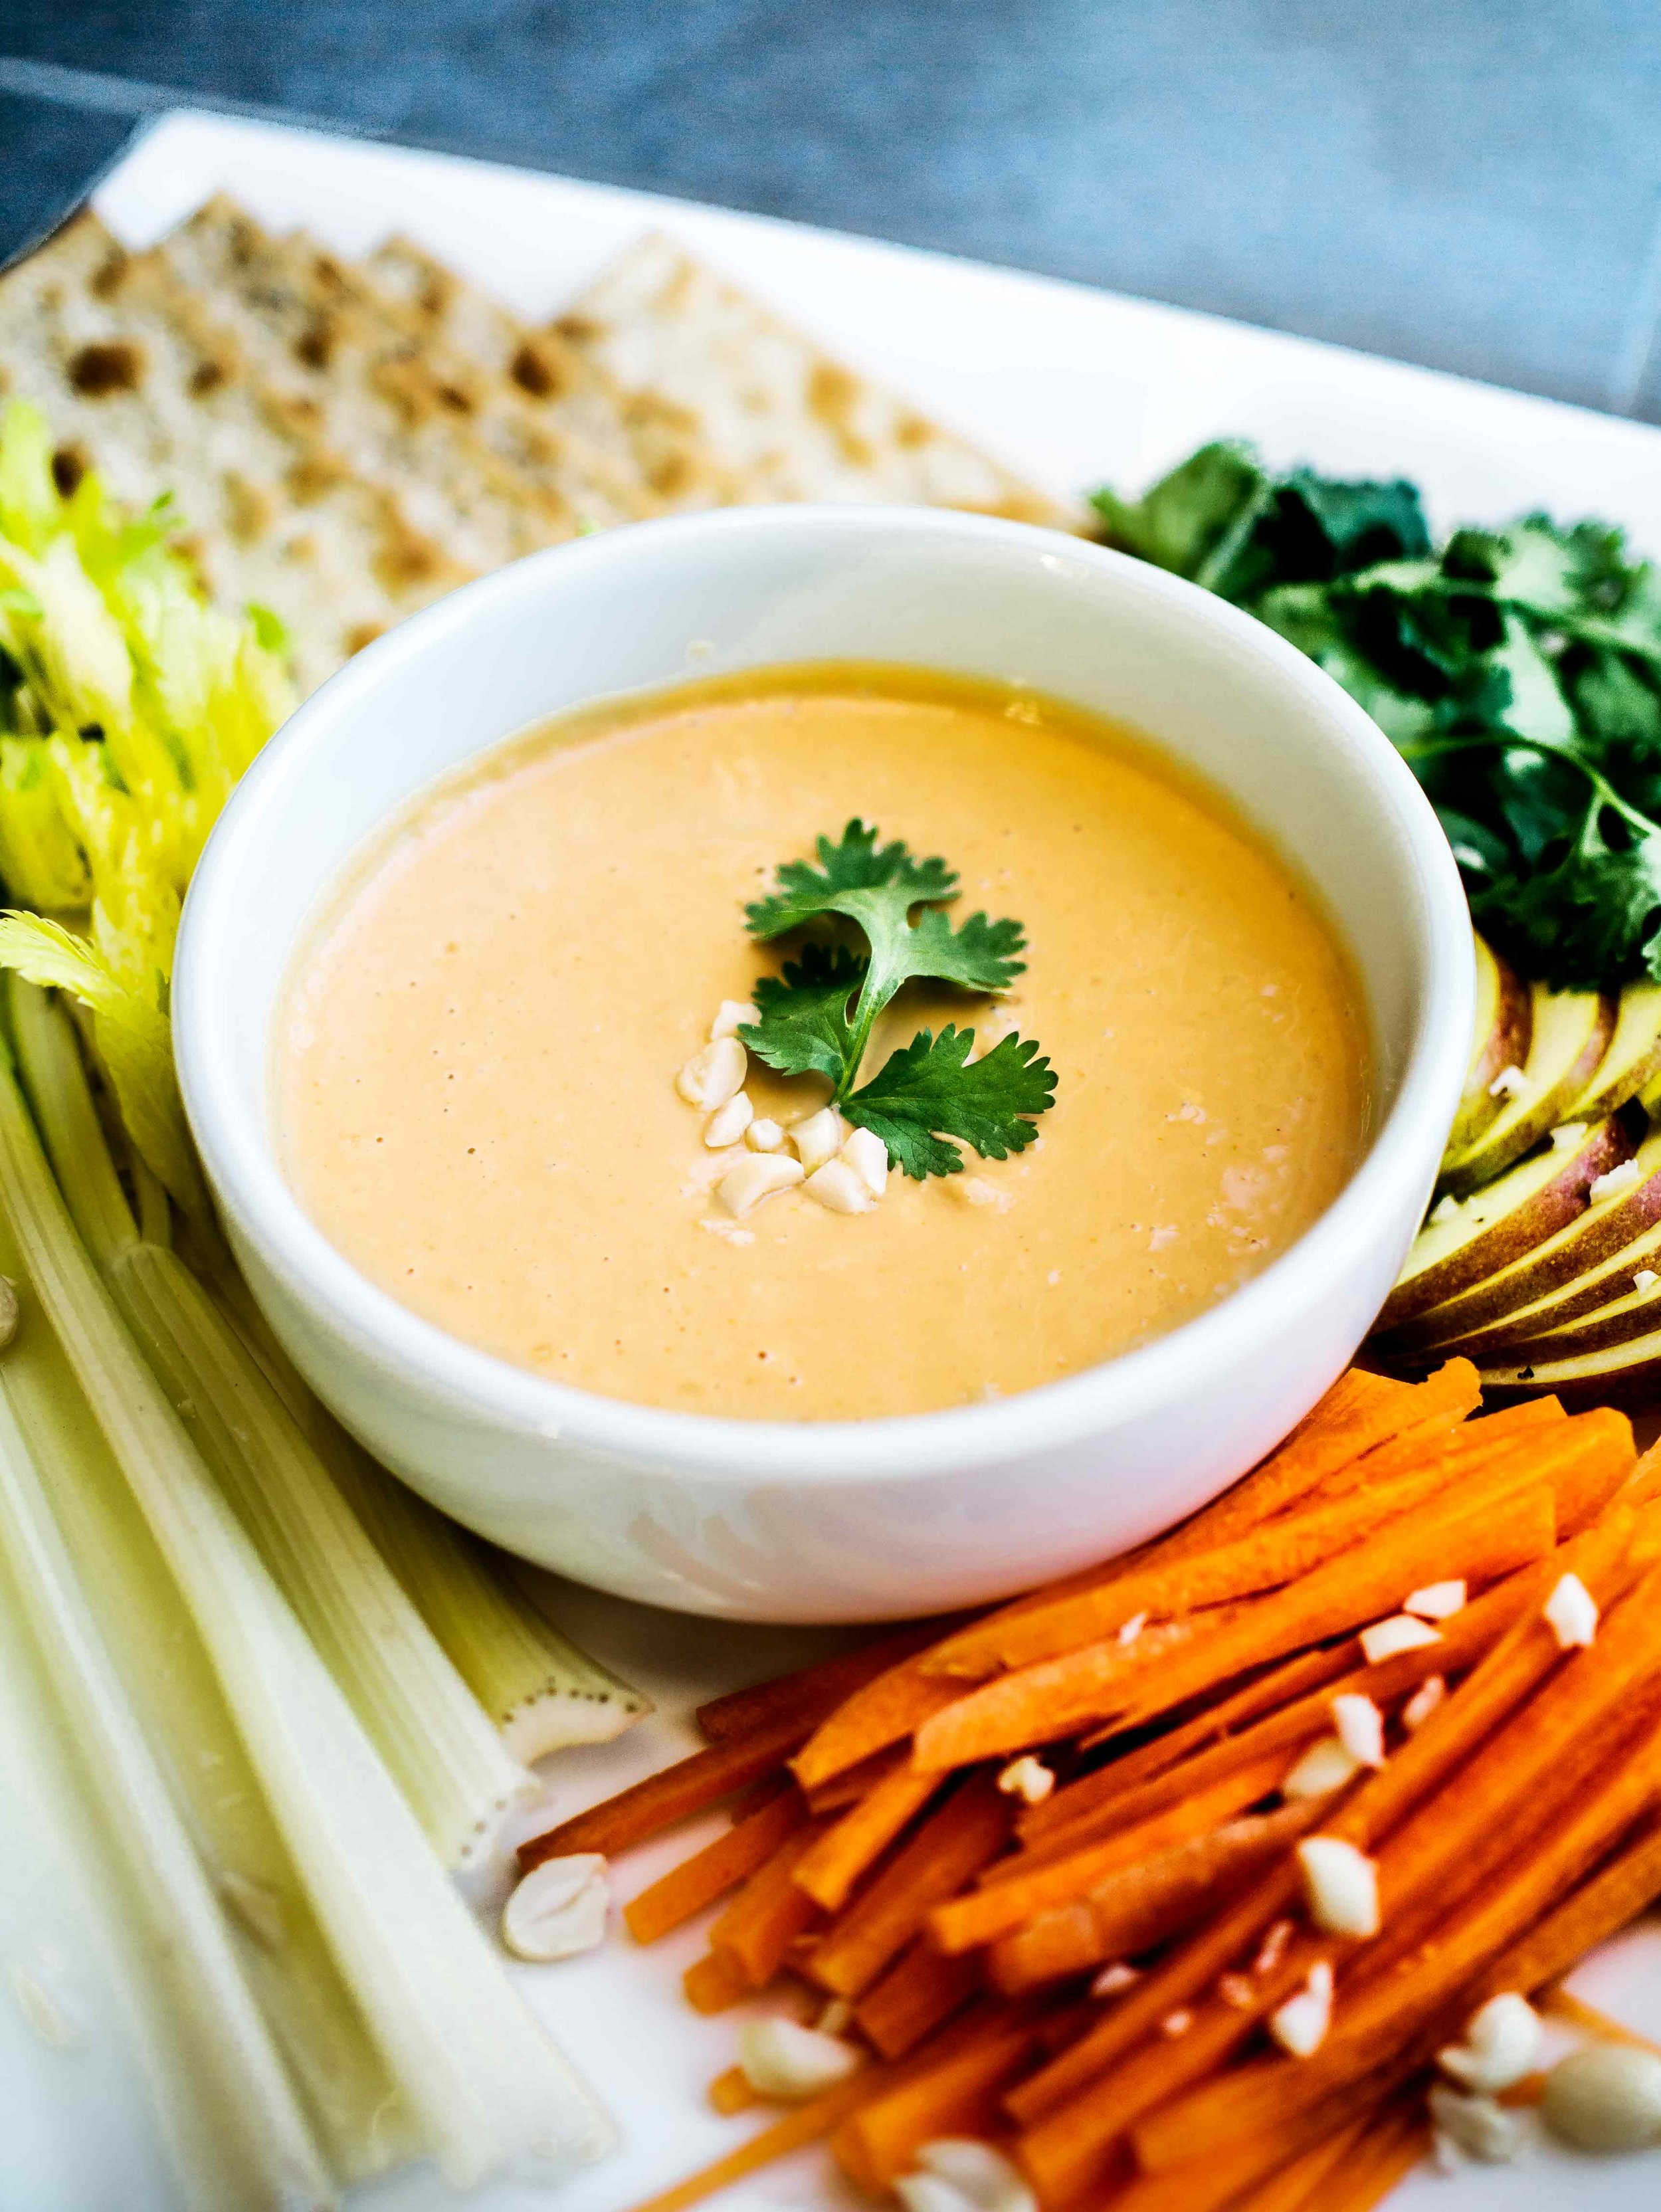 Peanut Dipping Sauce   Discover Delicious   www.discoverdelicious.org   Vegan Food Blog